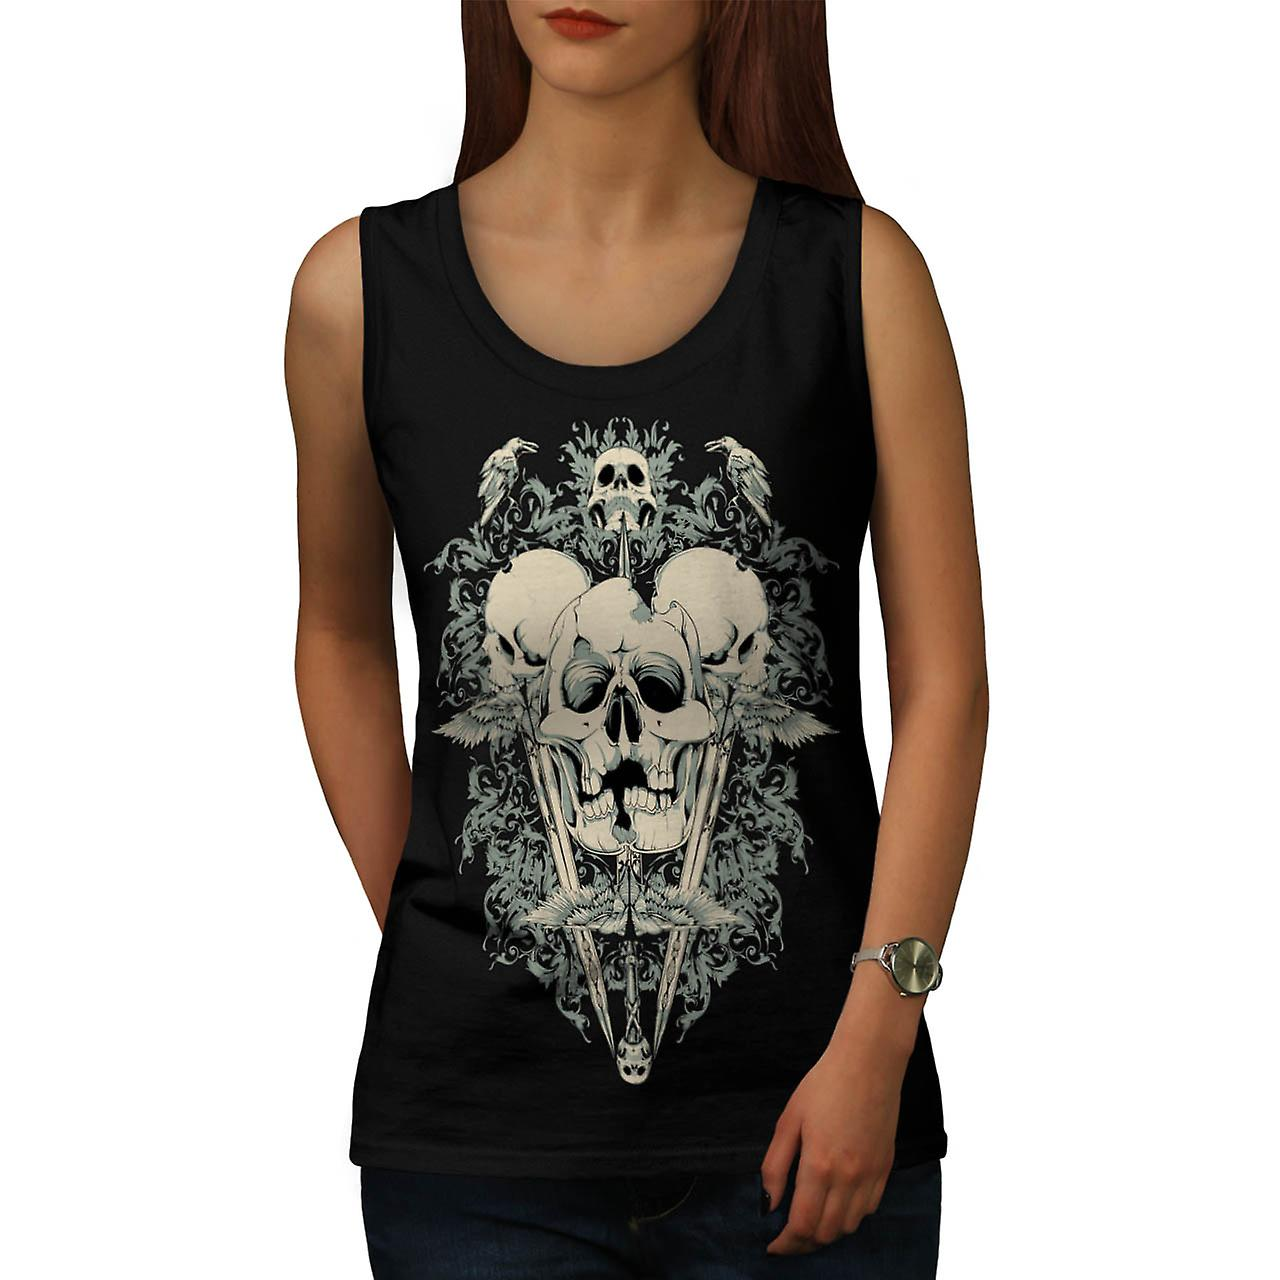 Mostro morte cranio crepa denti donne Tank Top nero | Wellcoda